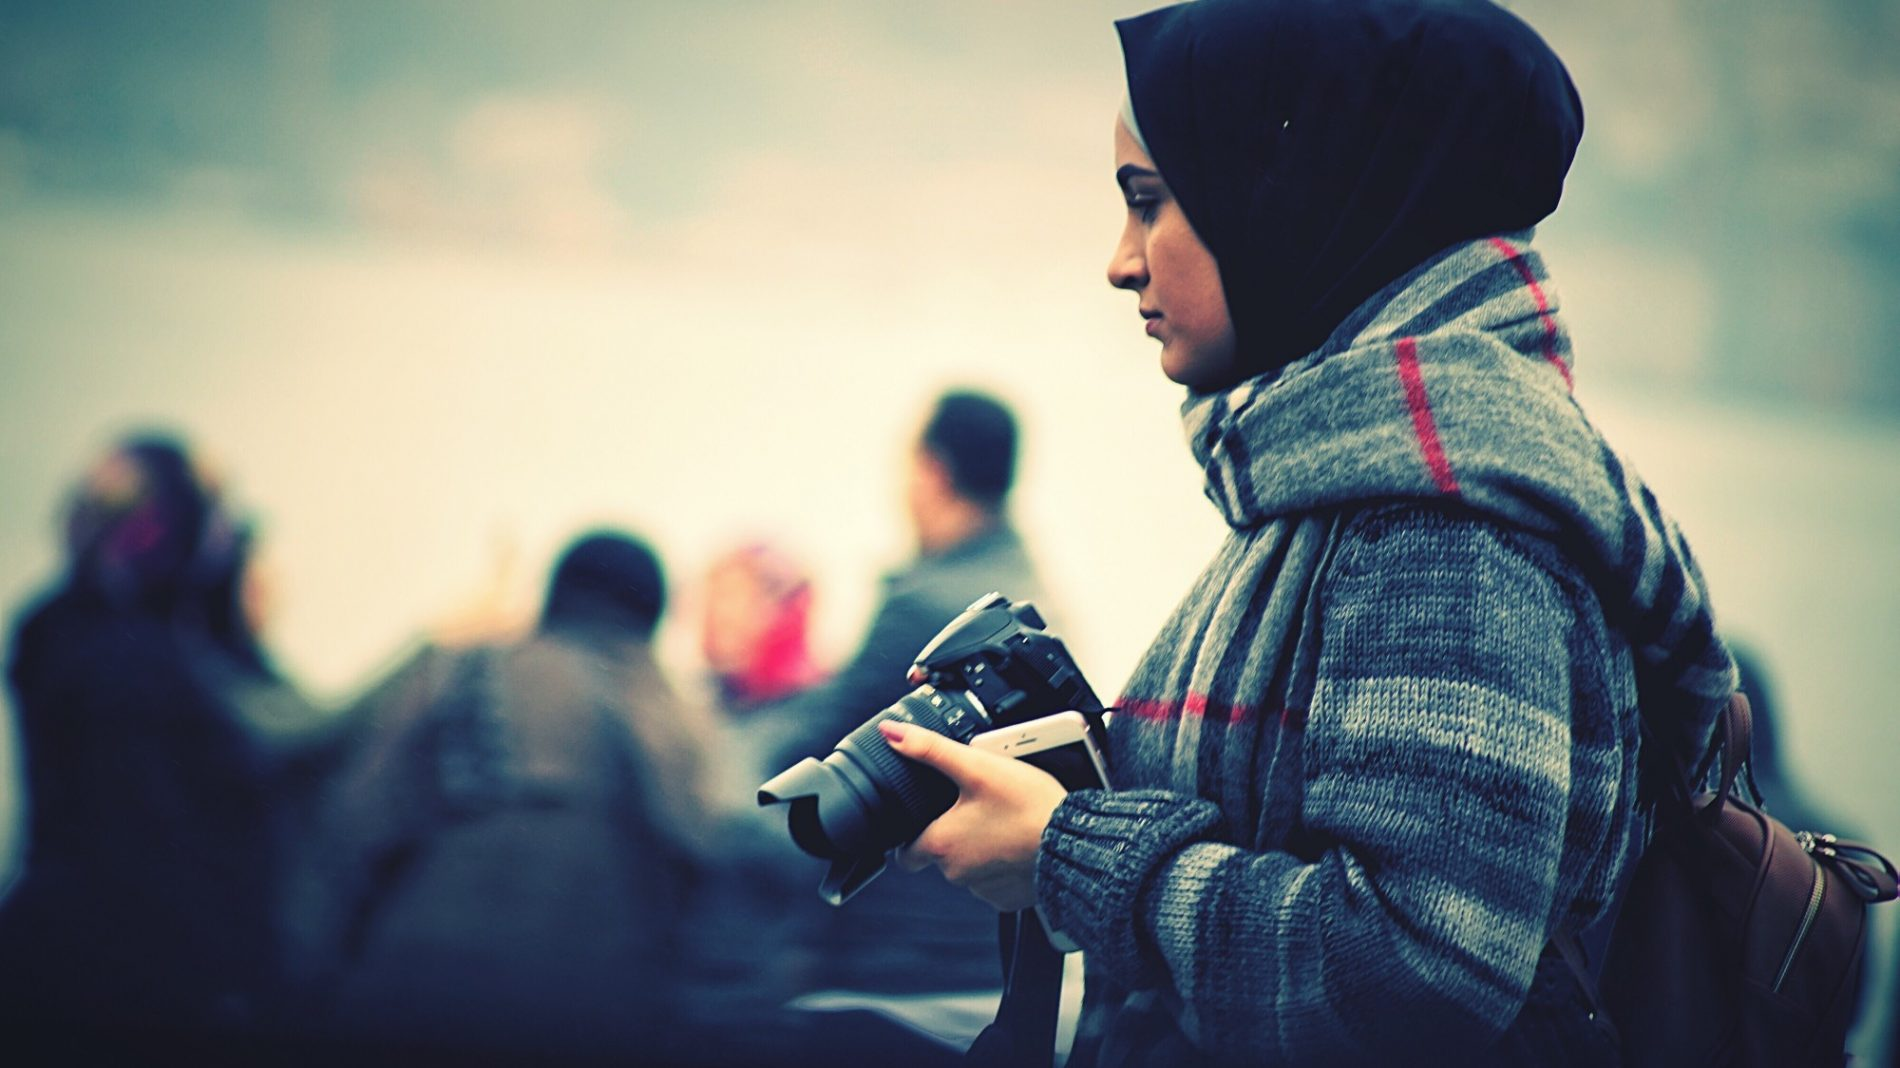 A young woman holding a camera